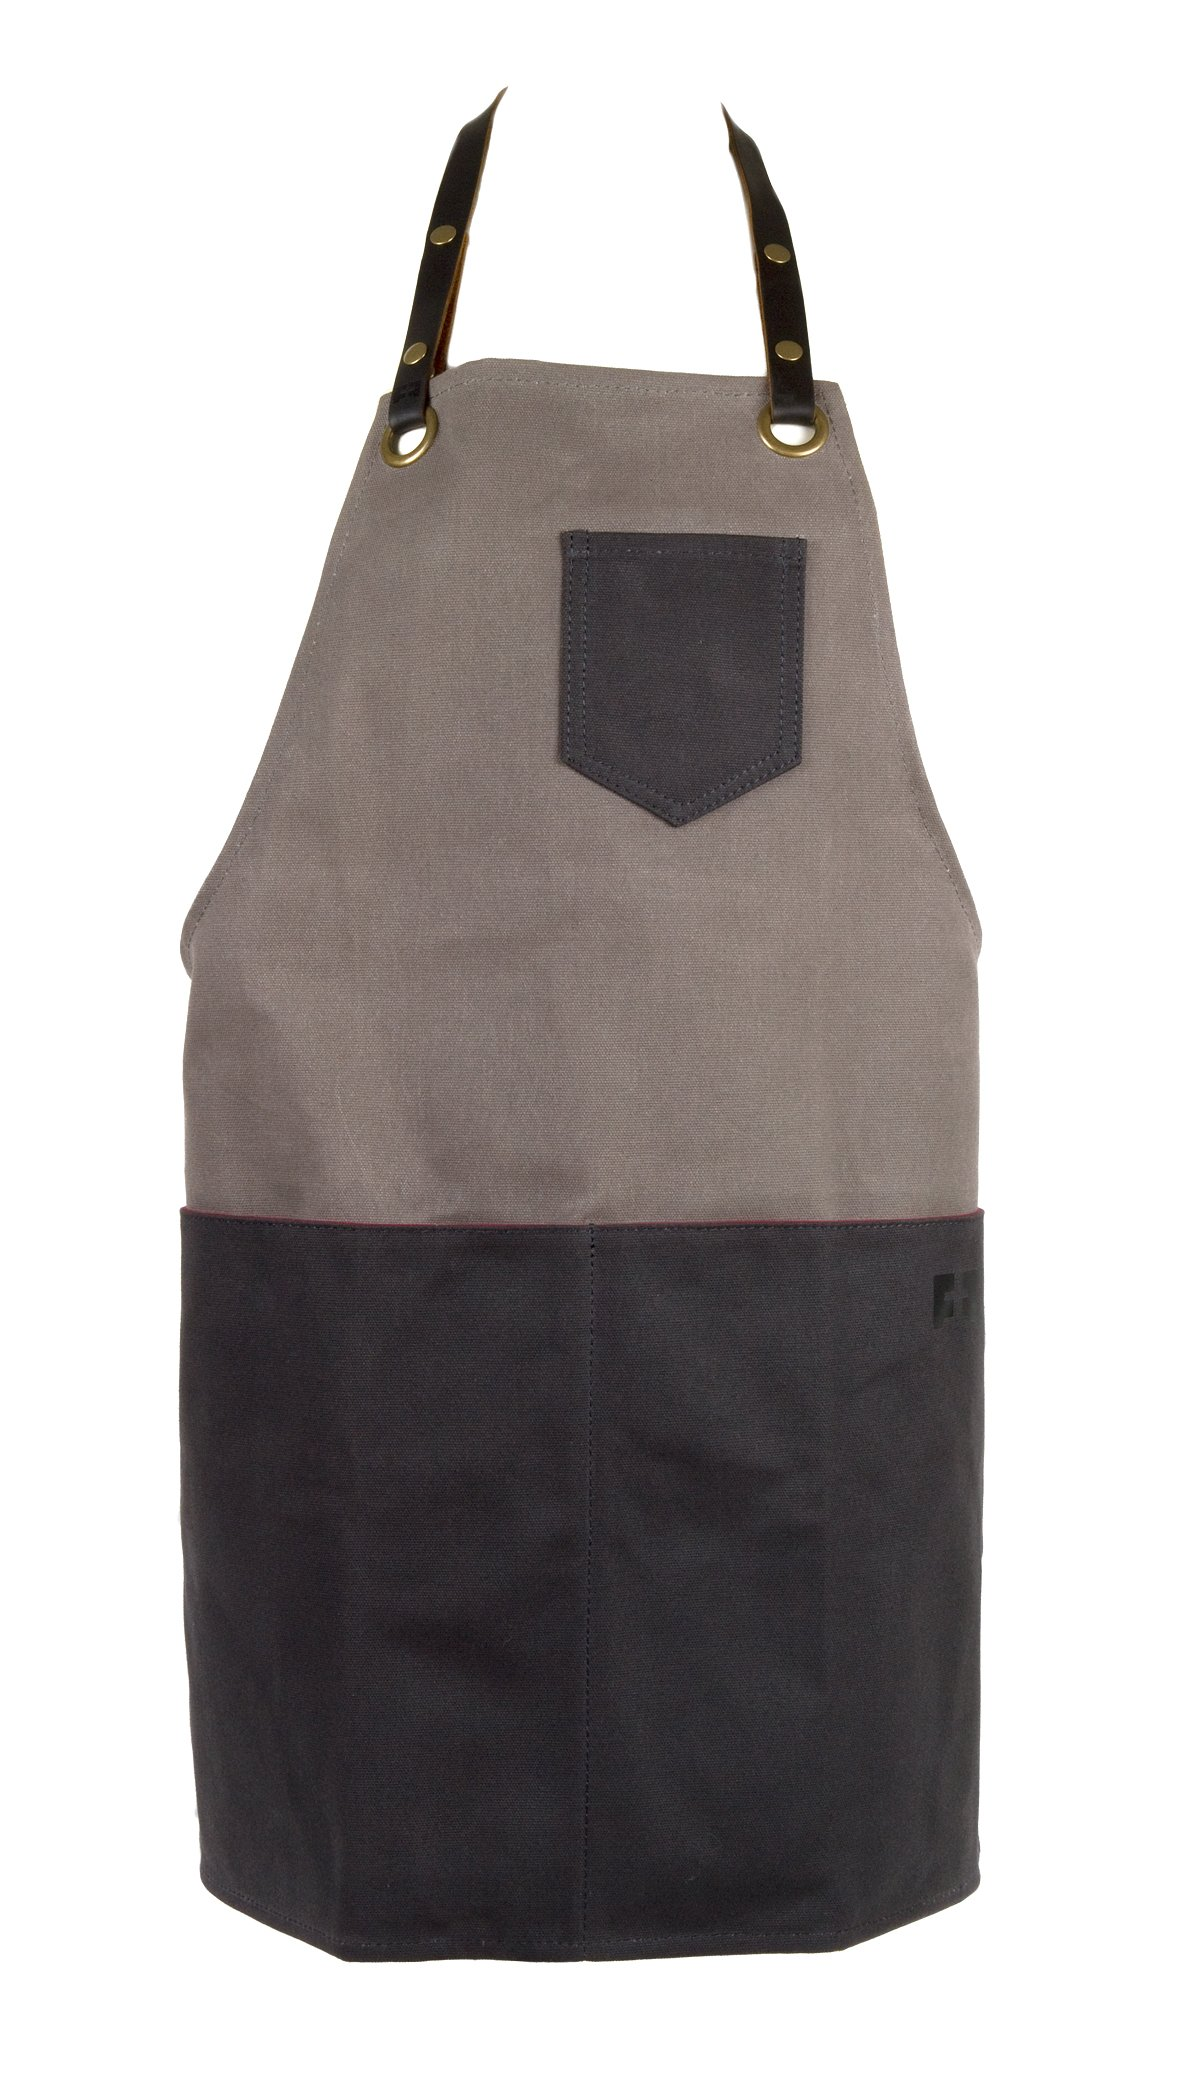 Waxed Cotton Canvas Shop Apron for Chefs, Baristas, Bike or Ski Mechanics, Woodworkers   the Edison Everyday Apron by FAT FELT